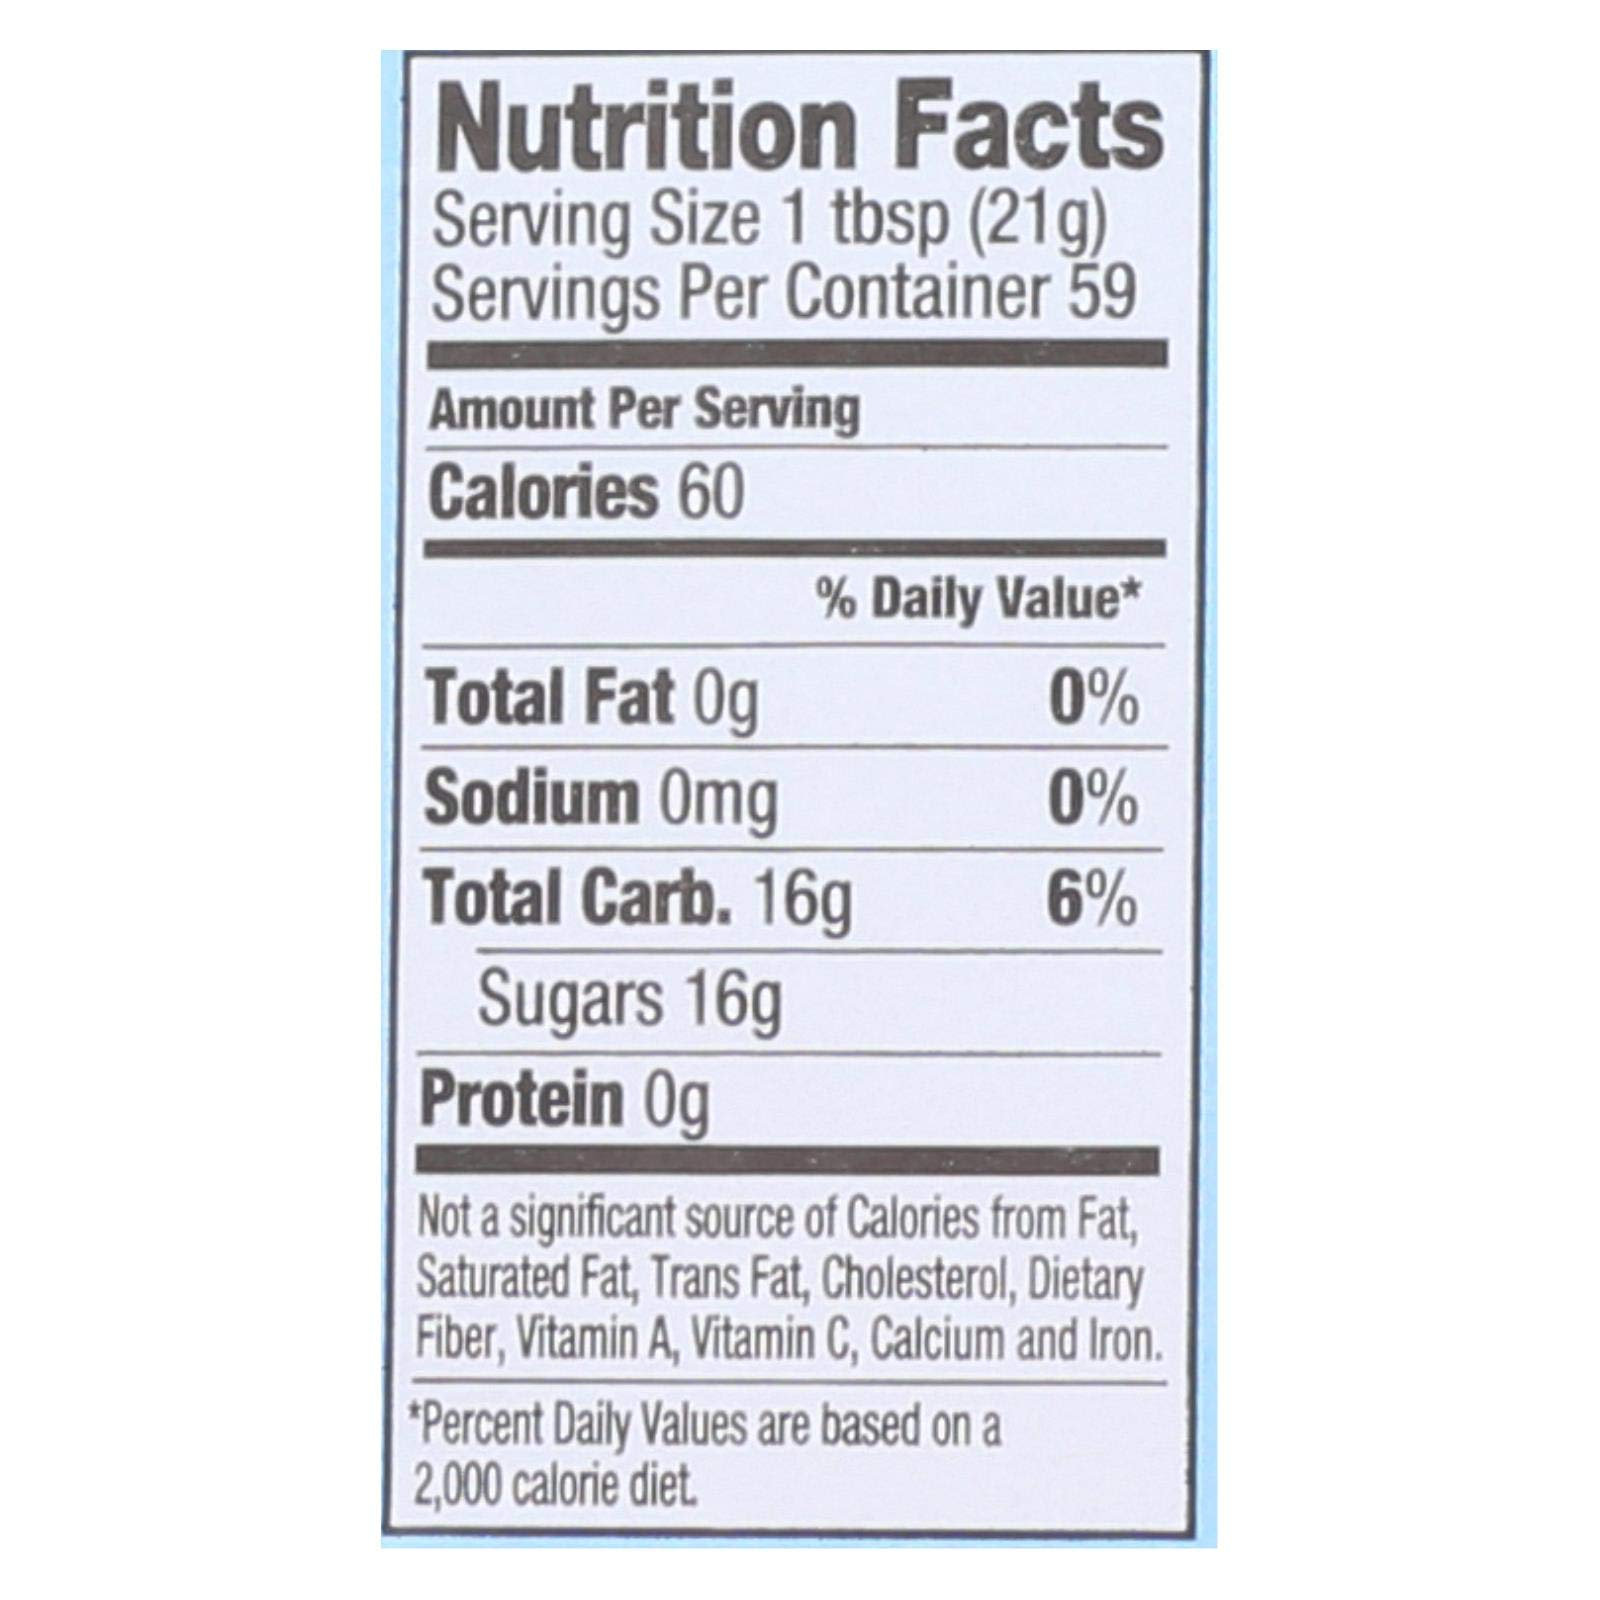 Wholesome Sweeteners Blue Agave - Organic - 44 oz - case of 6 by Wholesome Sweeteners (Image #2)